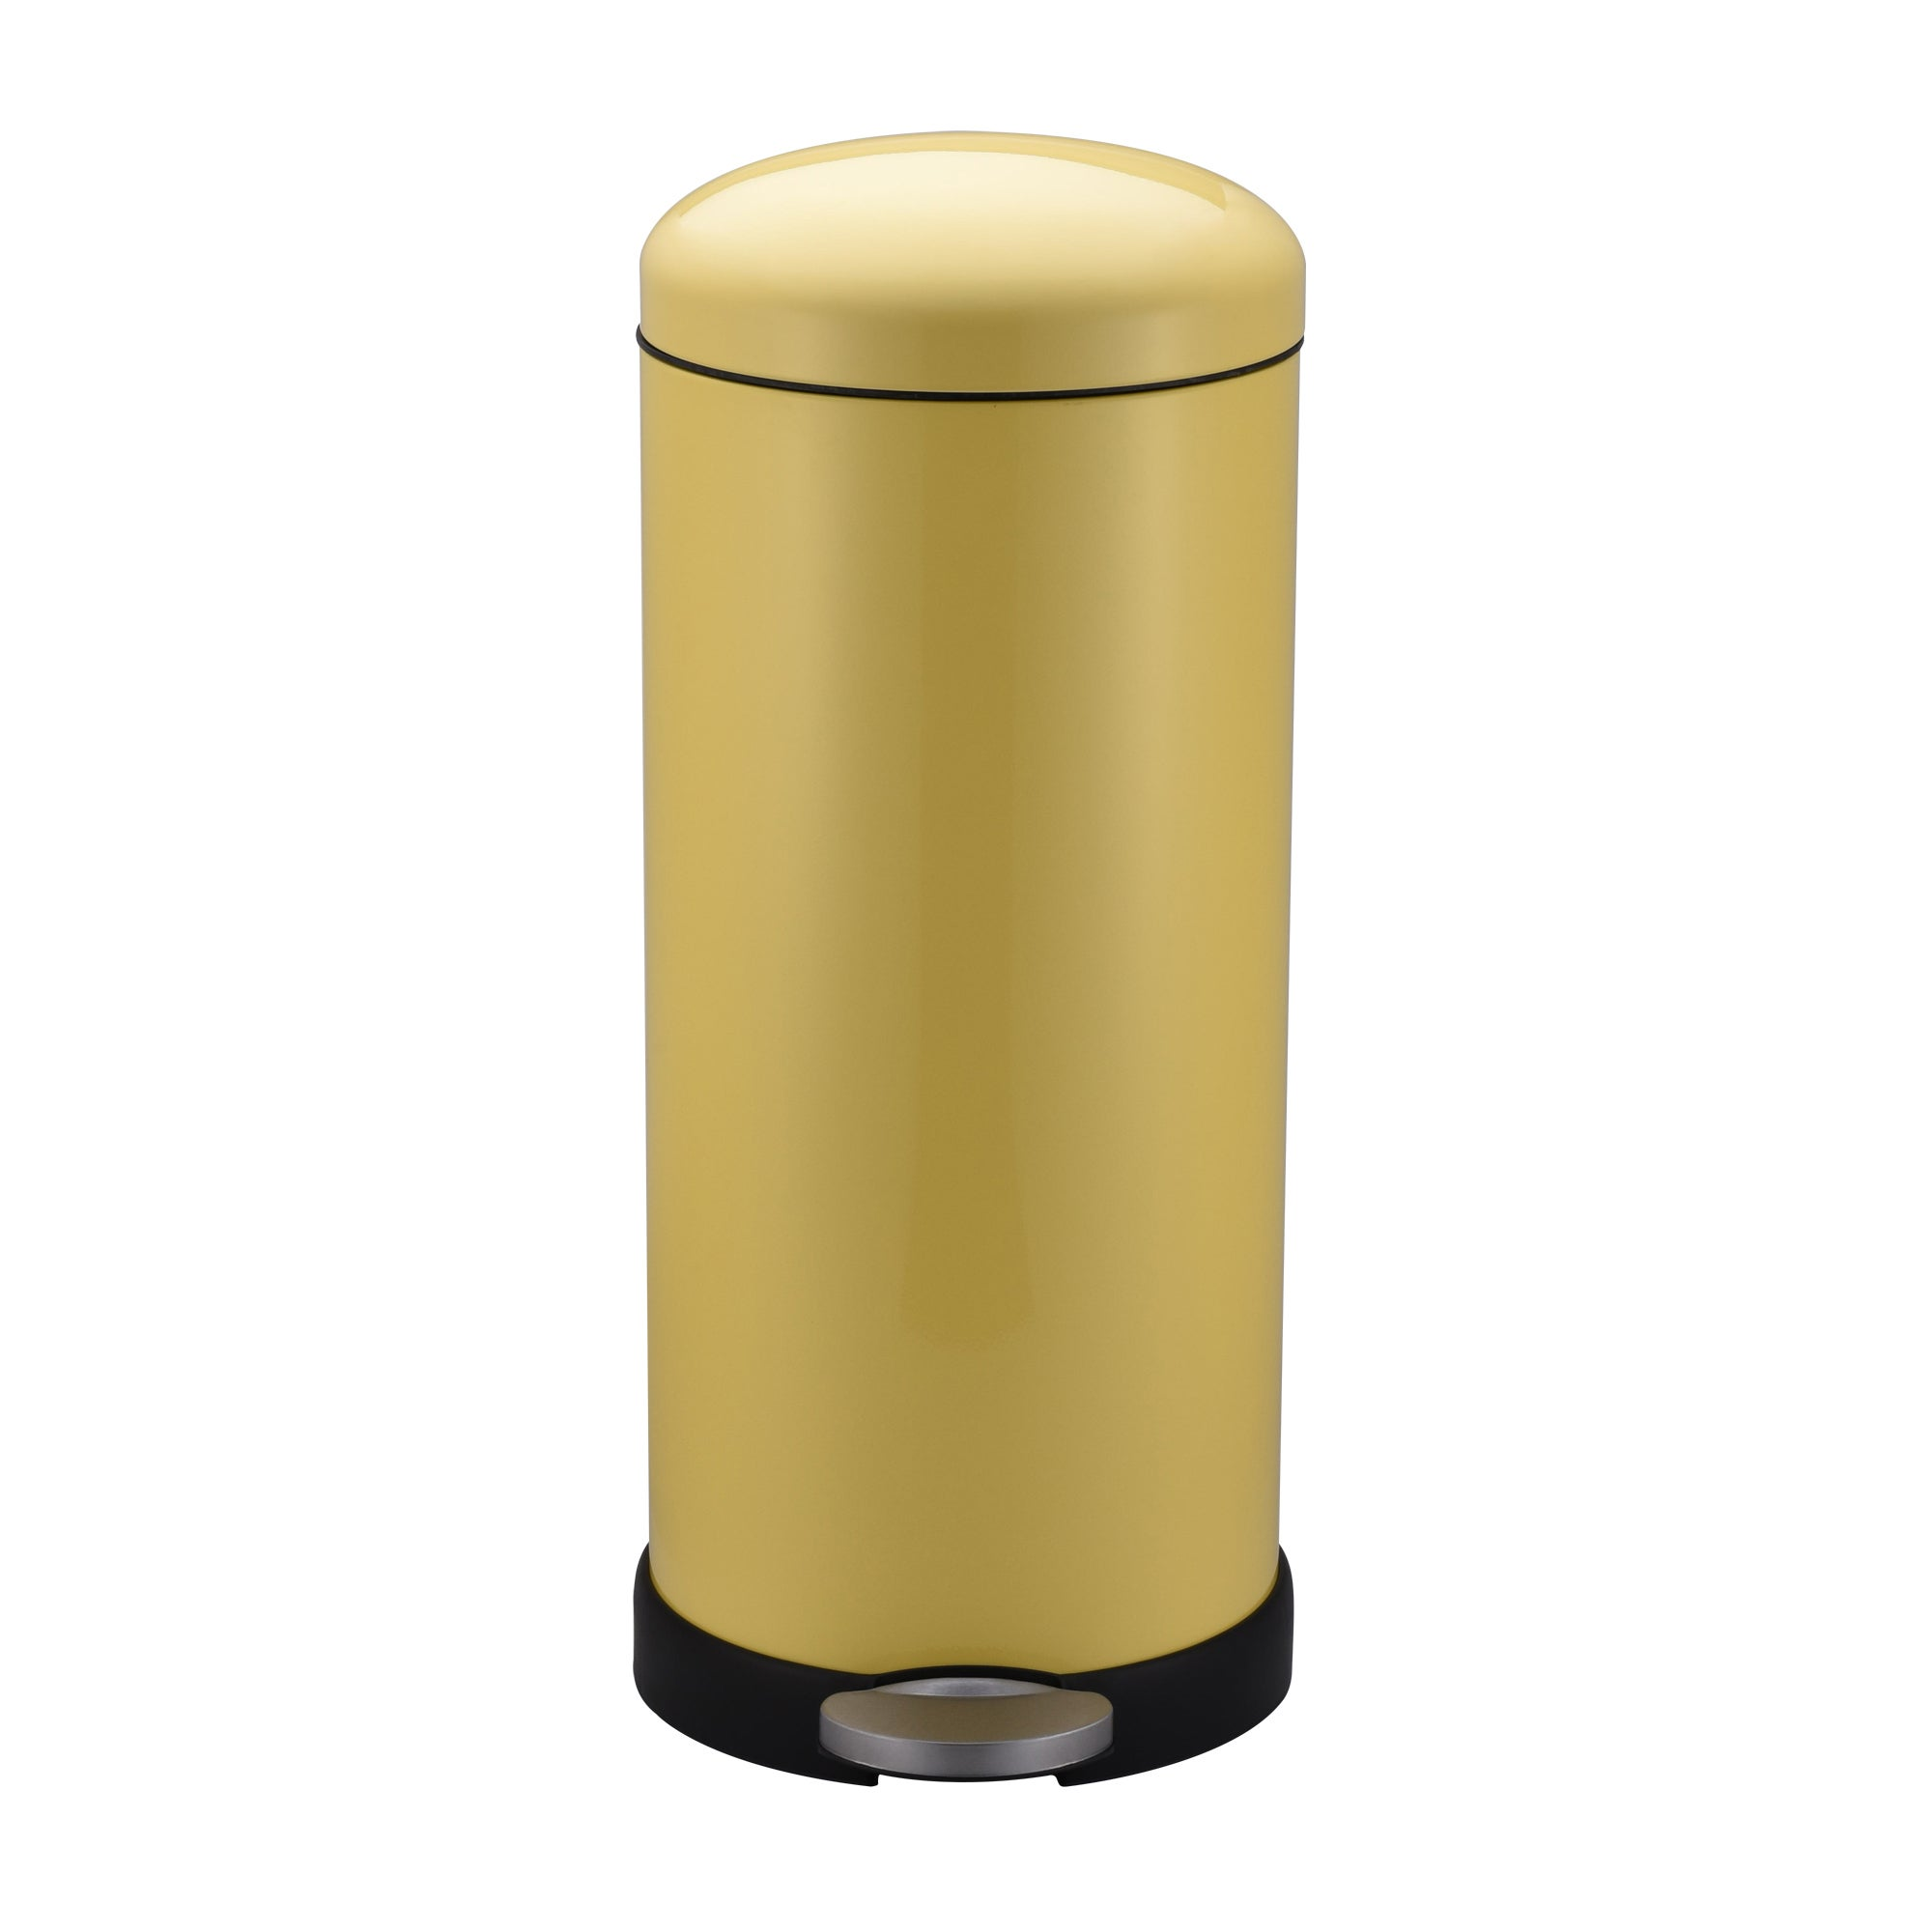 Image of 30 Litre Yellow Pedal Bin Yellow